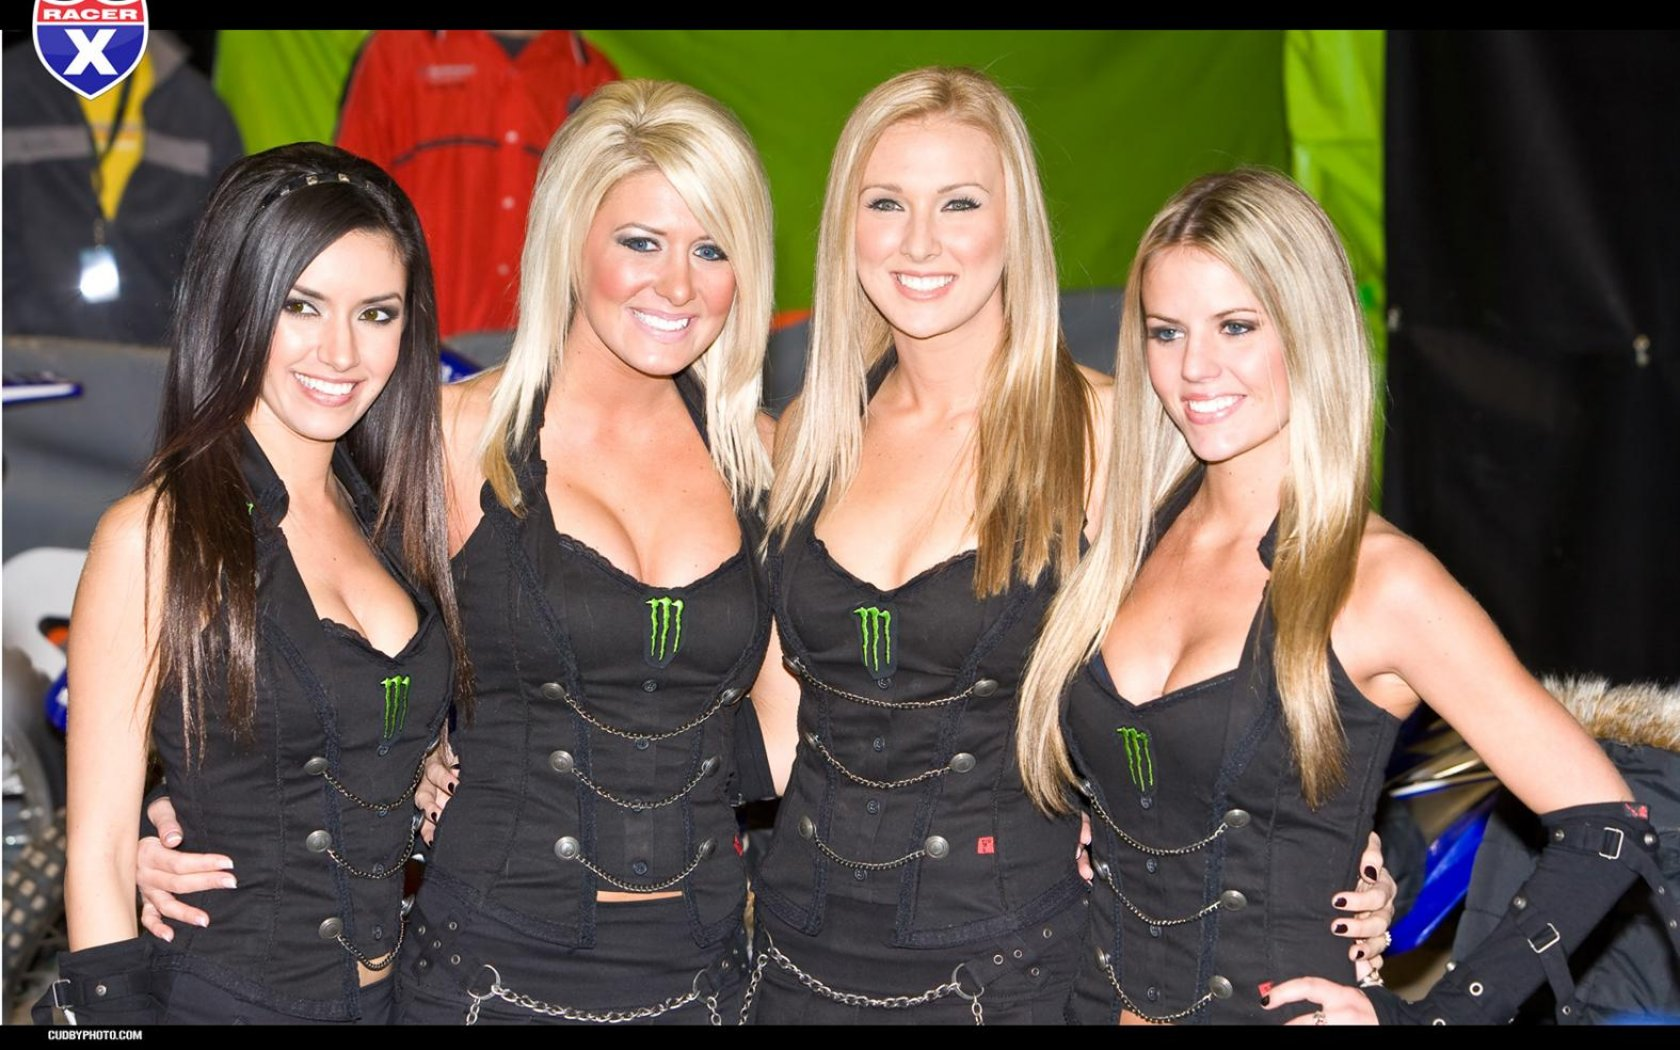 Monster Energy Girls Wallpaper Houston Sx Wallpapers Racer X Online